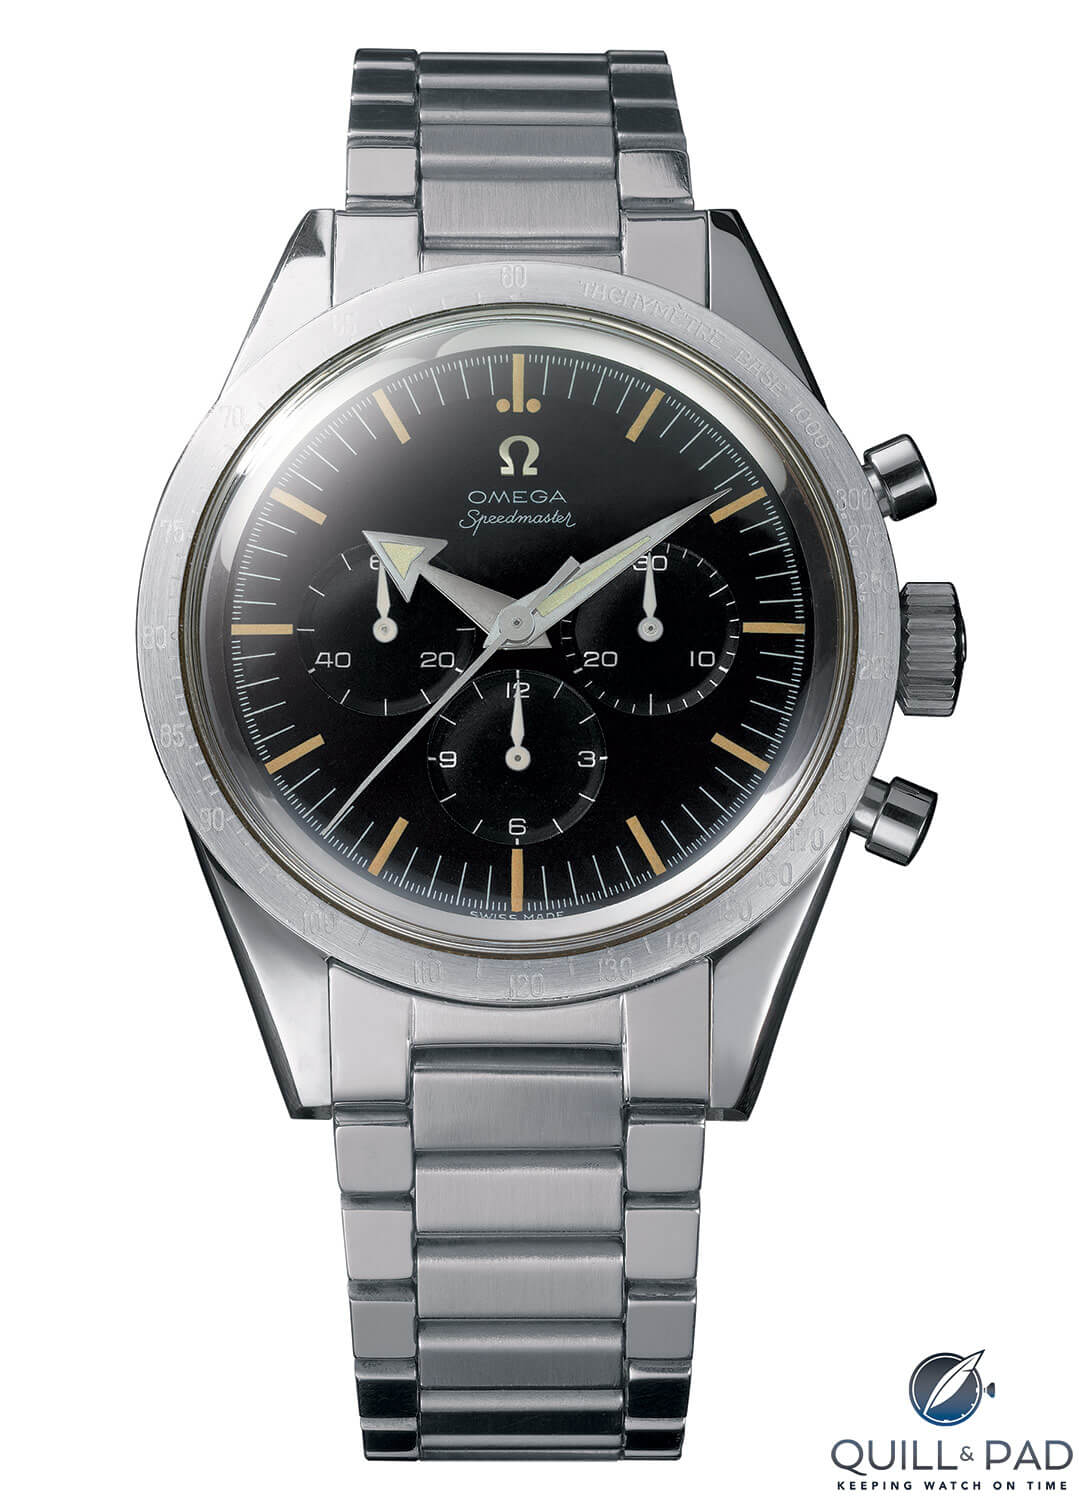 1957 Omega Broad arrow chronograph is powered by a featuring Caliber 321 movement